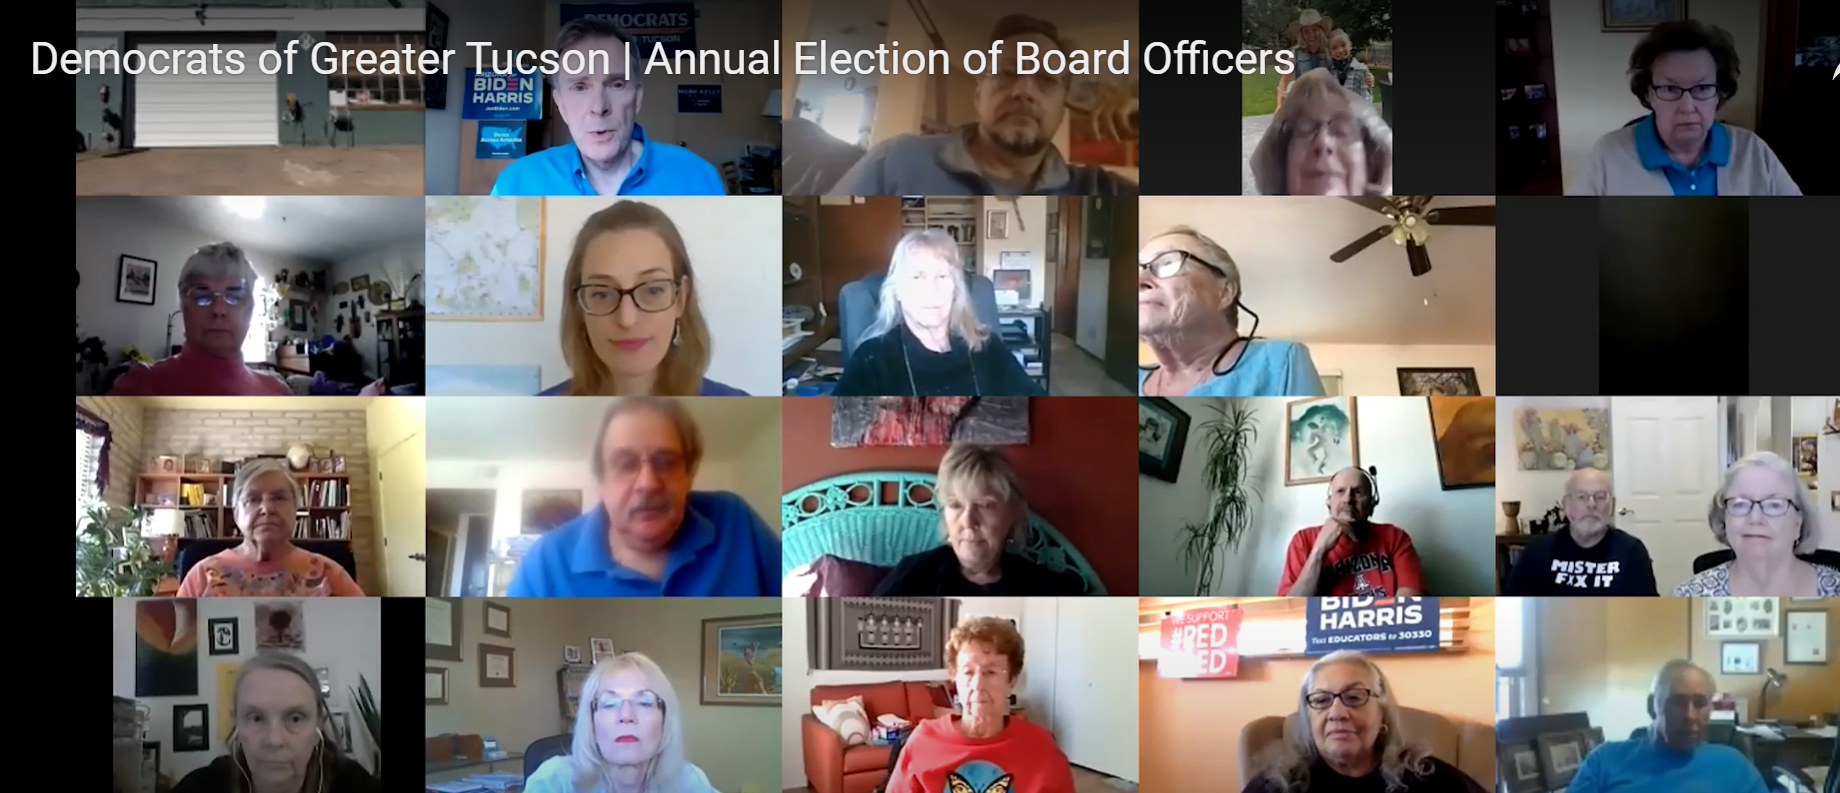 DGT Members Elect Board Members for 2021